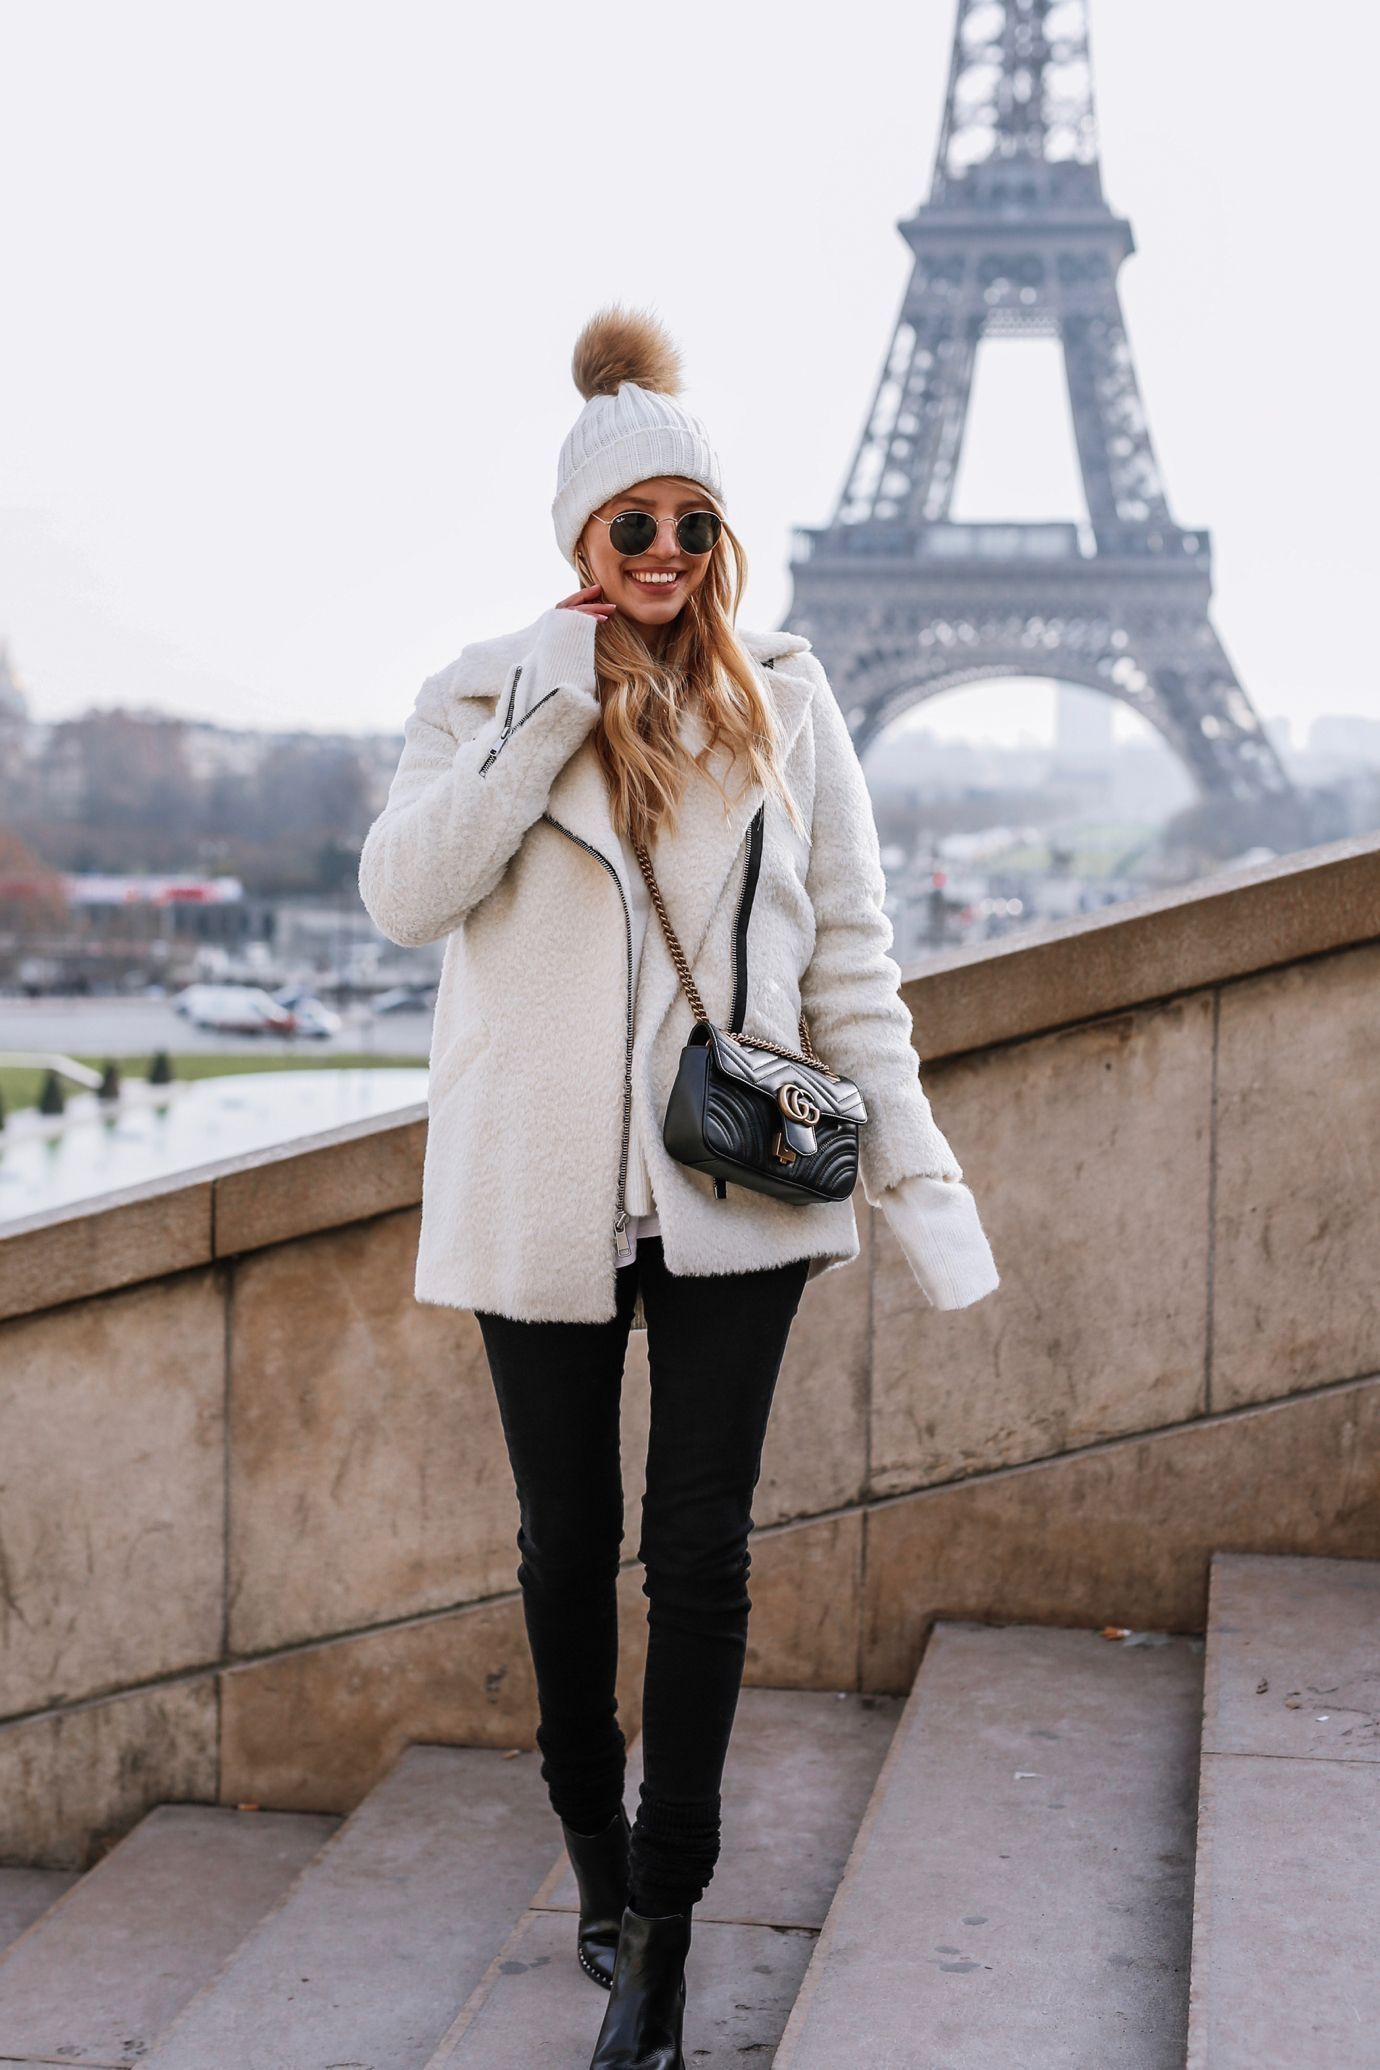 35 Trendy Winter Outfits to Wear Now #winteroutfits